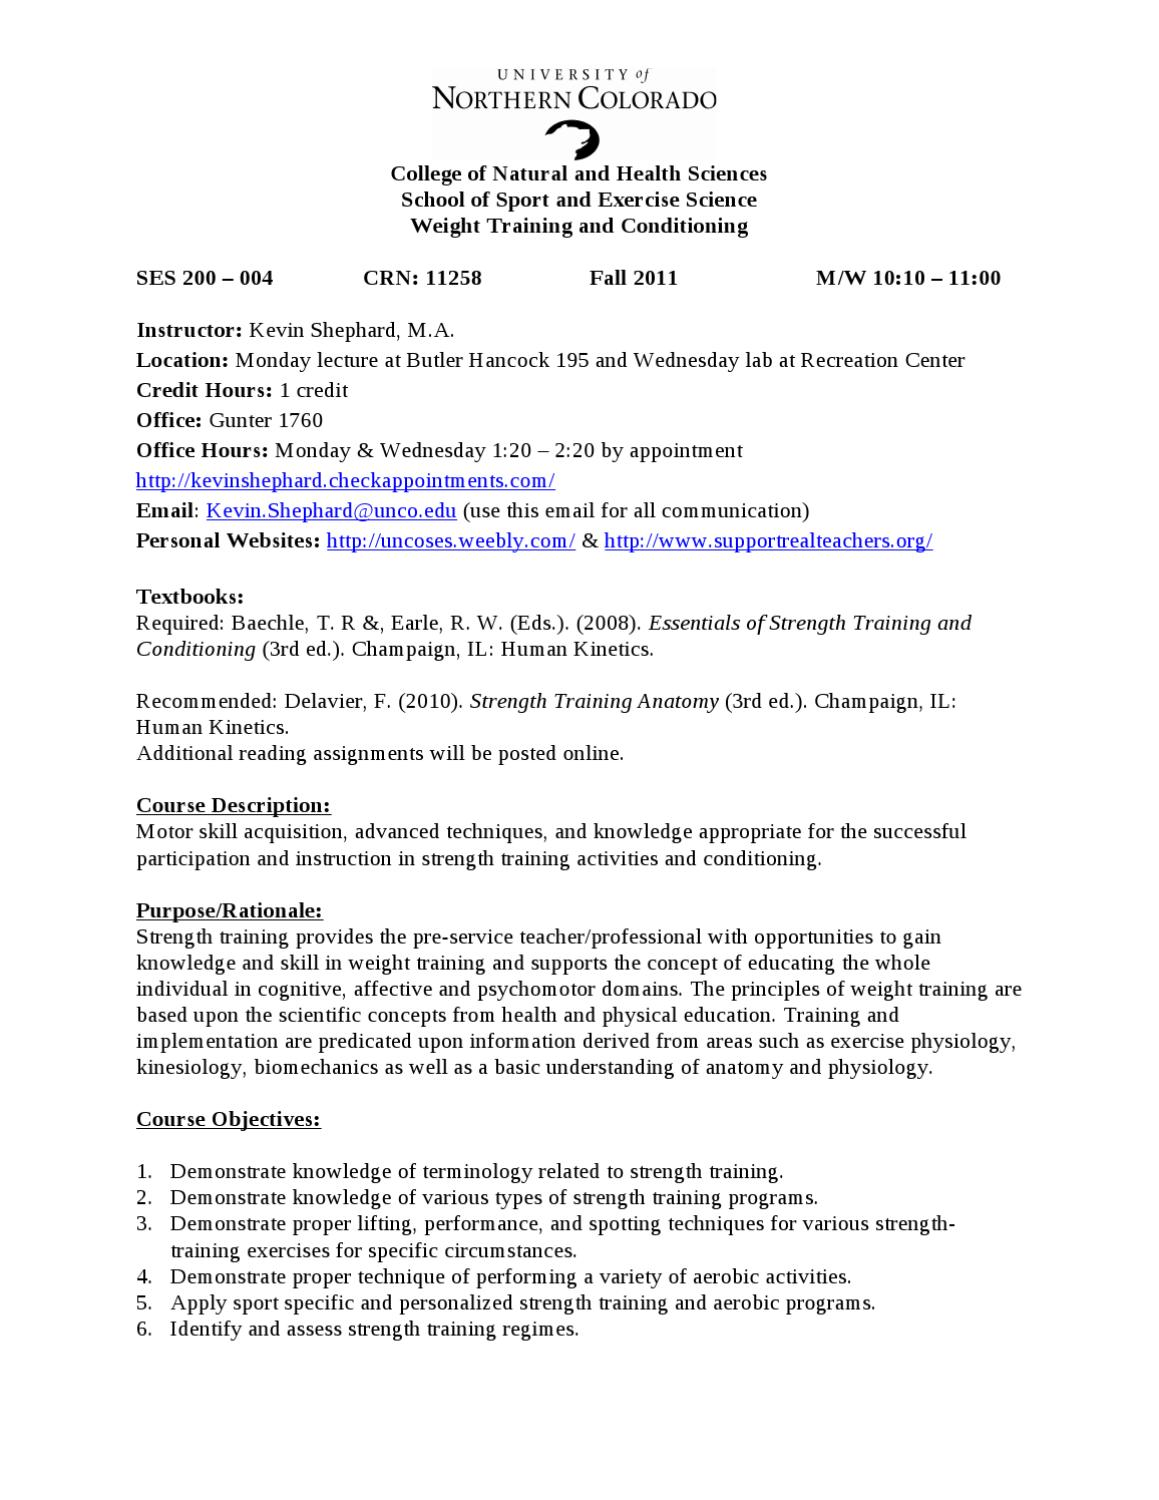 ses 200 syllabus by kevin shephard